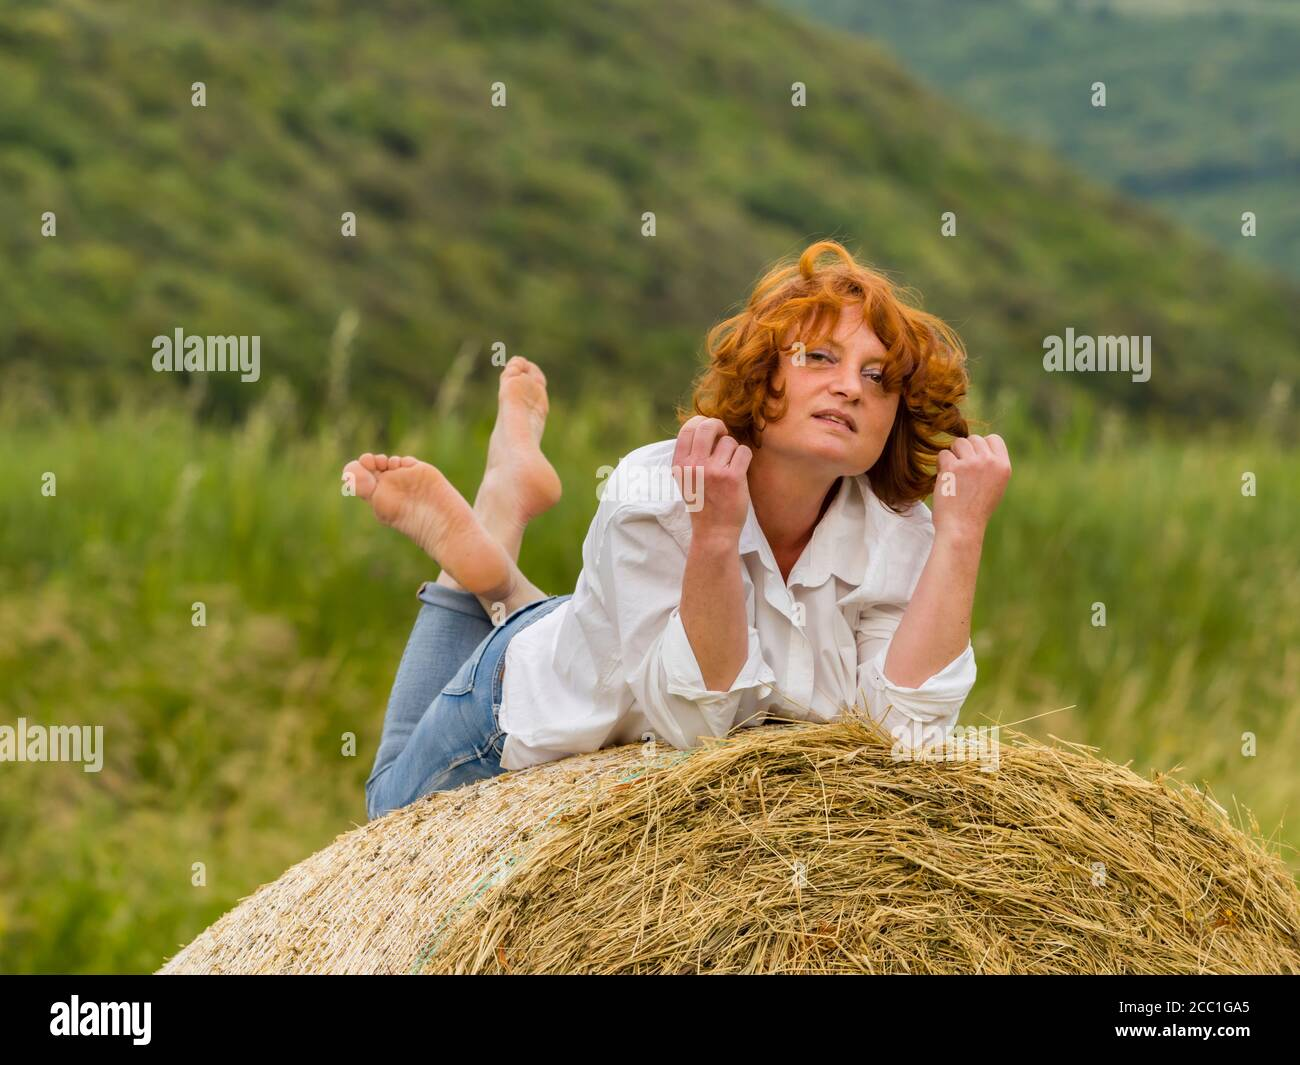 Redhaired woman on hay haystack eyeshot eyes eye contact looking at camera like lazy Stock Photo